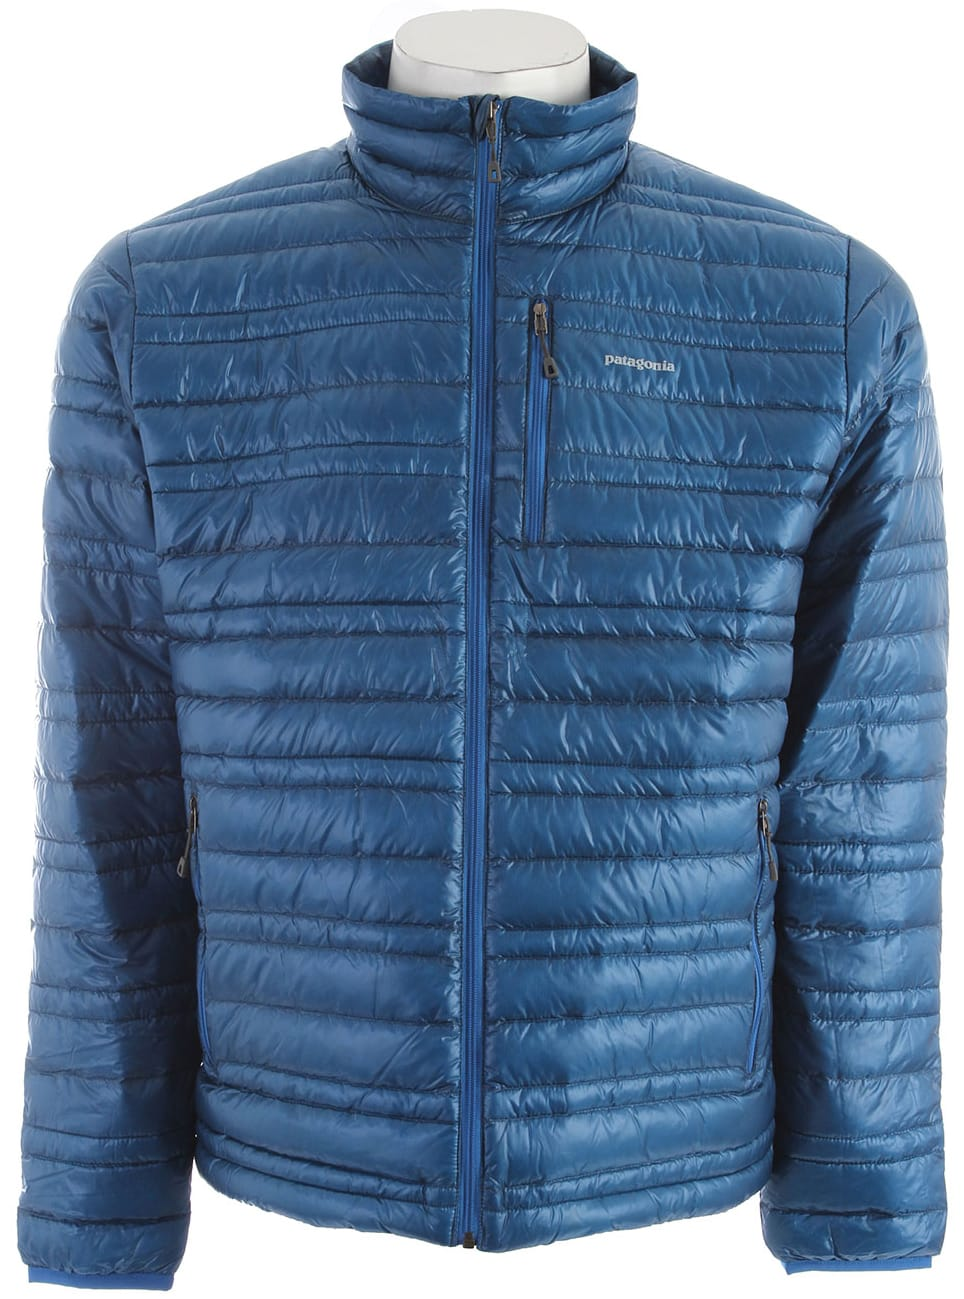 On Sale Patagonia Ultralight Down Jacket Up To 60 Off